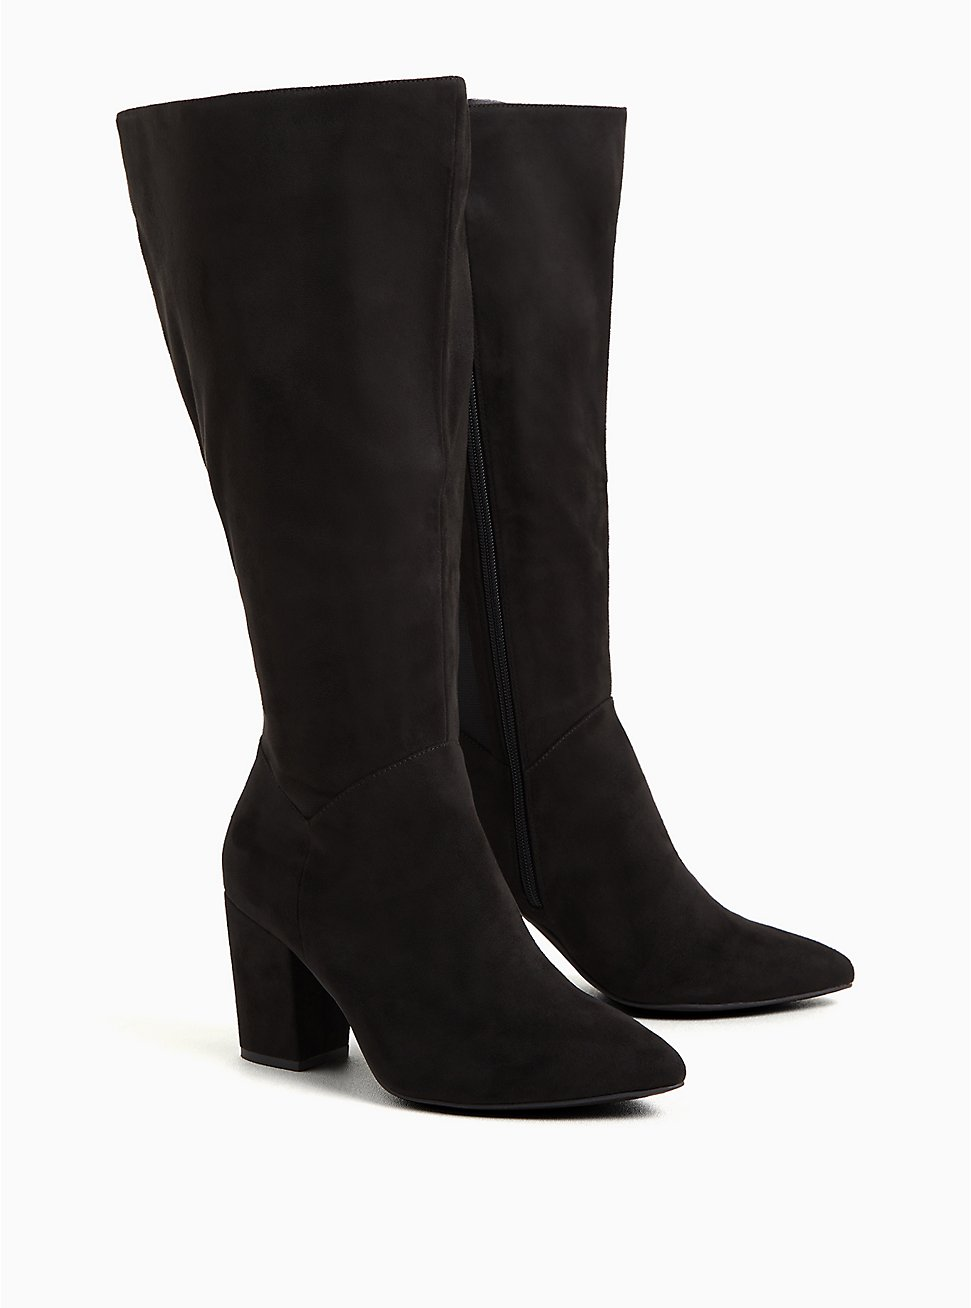 Black Faux Suede Pointed Toe Knee-High Boot (WW & Wide to Extra Wide Calf), BLACK, hi-res